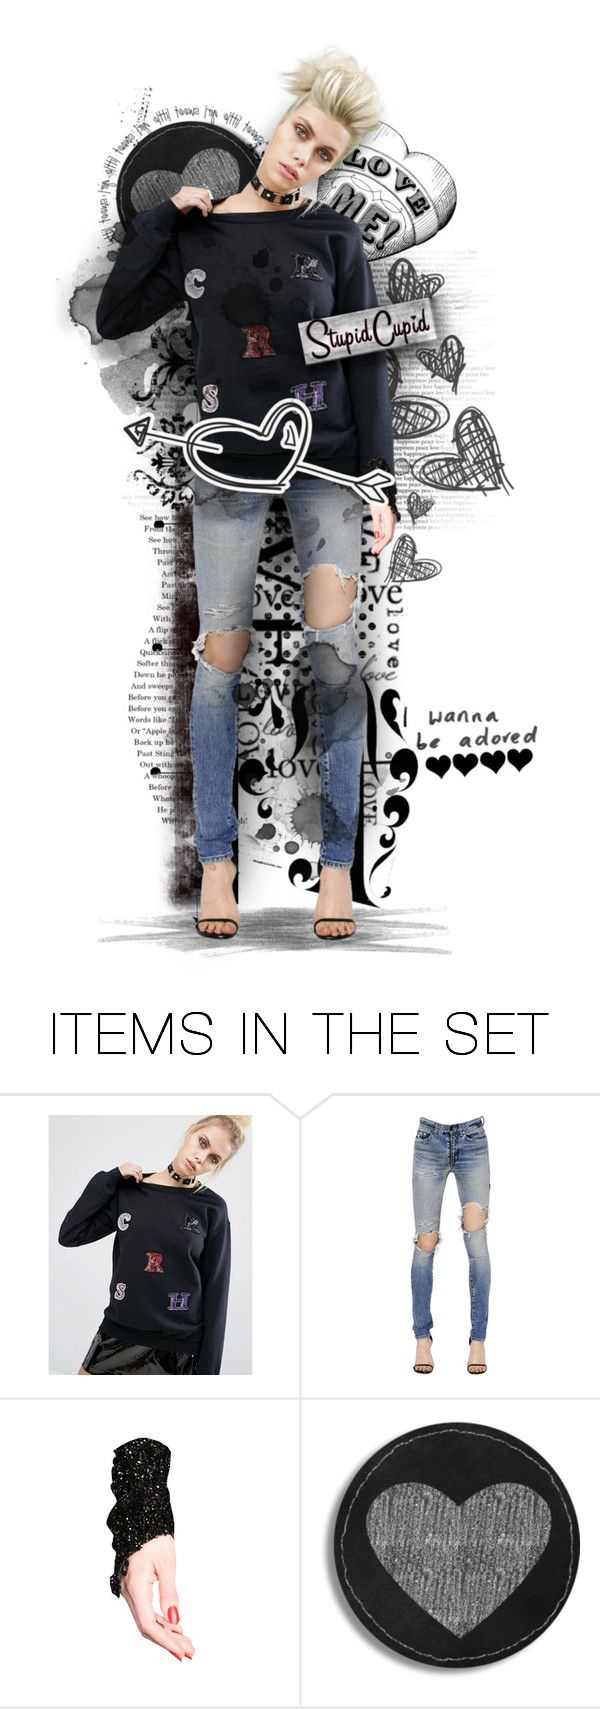 """Stupid Cupid"" by mycau ❤ liked on Polyvore featuring art"